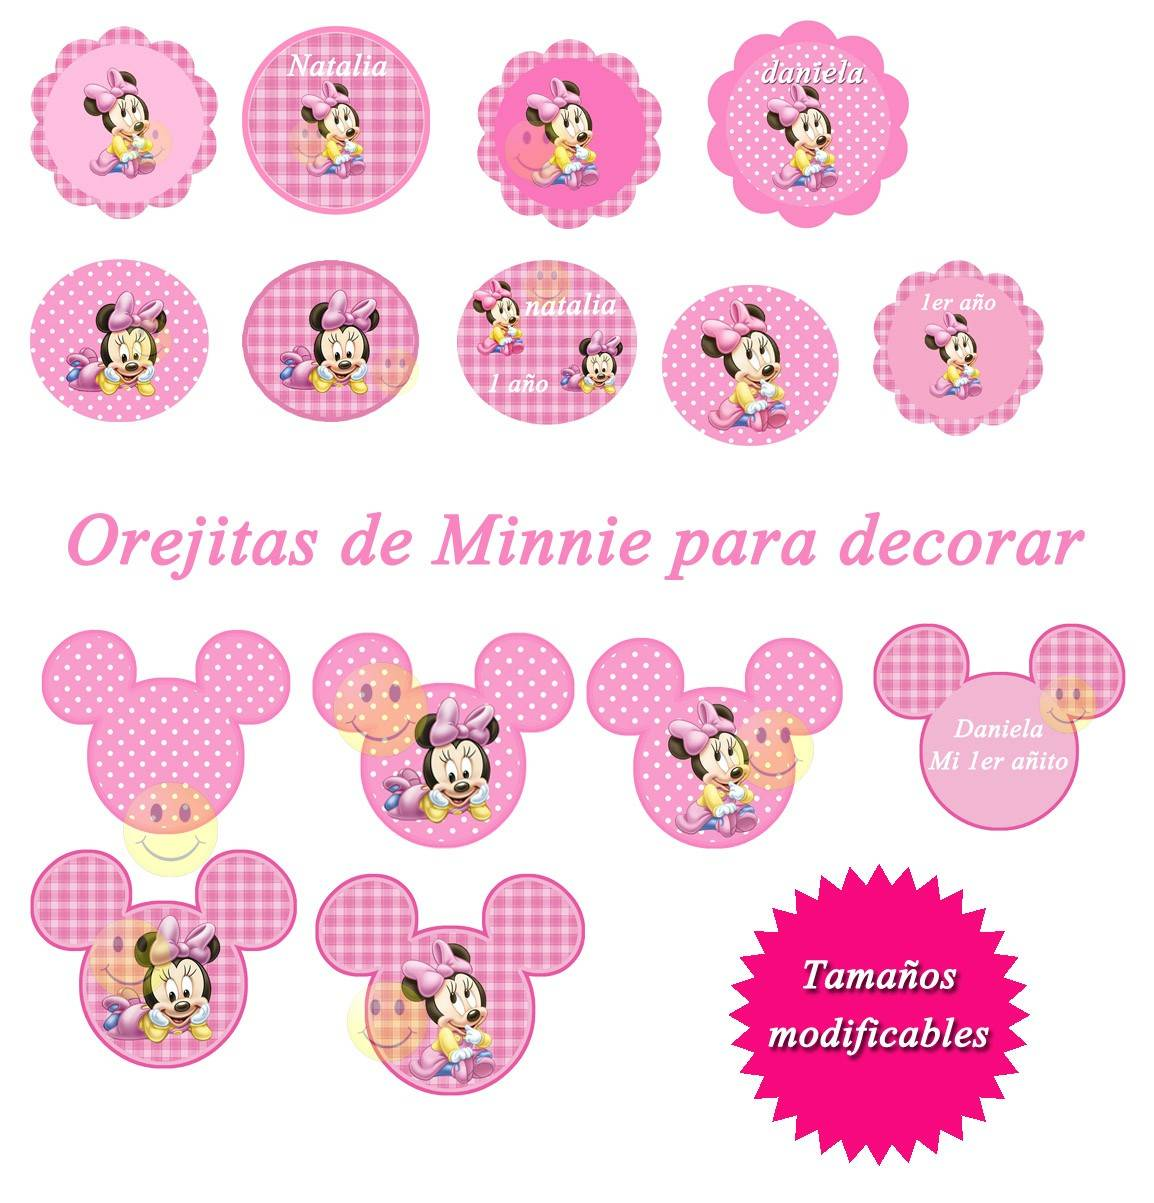 Kit Imprimible De Minnie Mouse Bebe - Diseña Tarjetas Y Mas ...